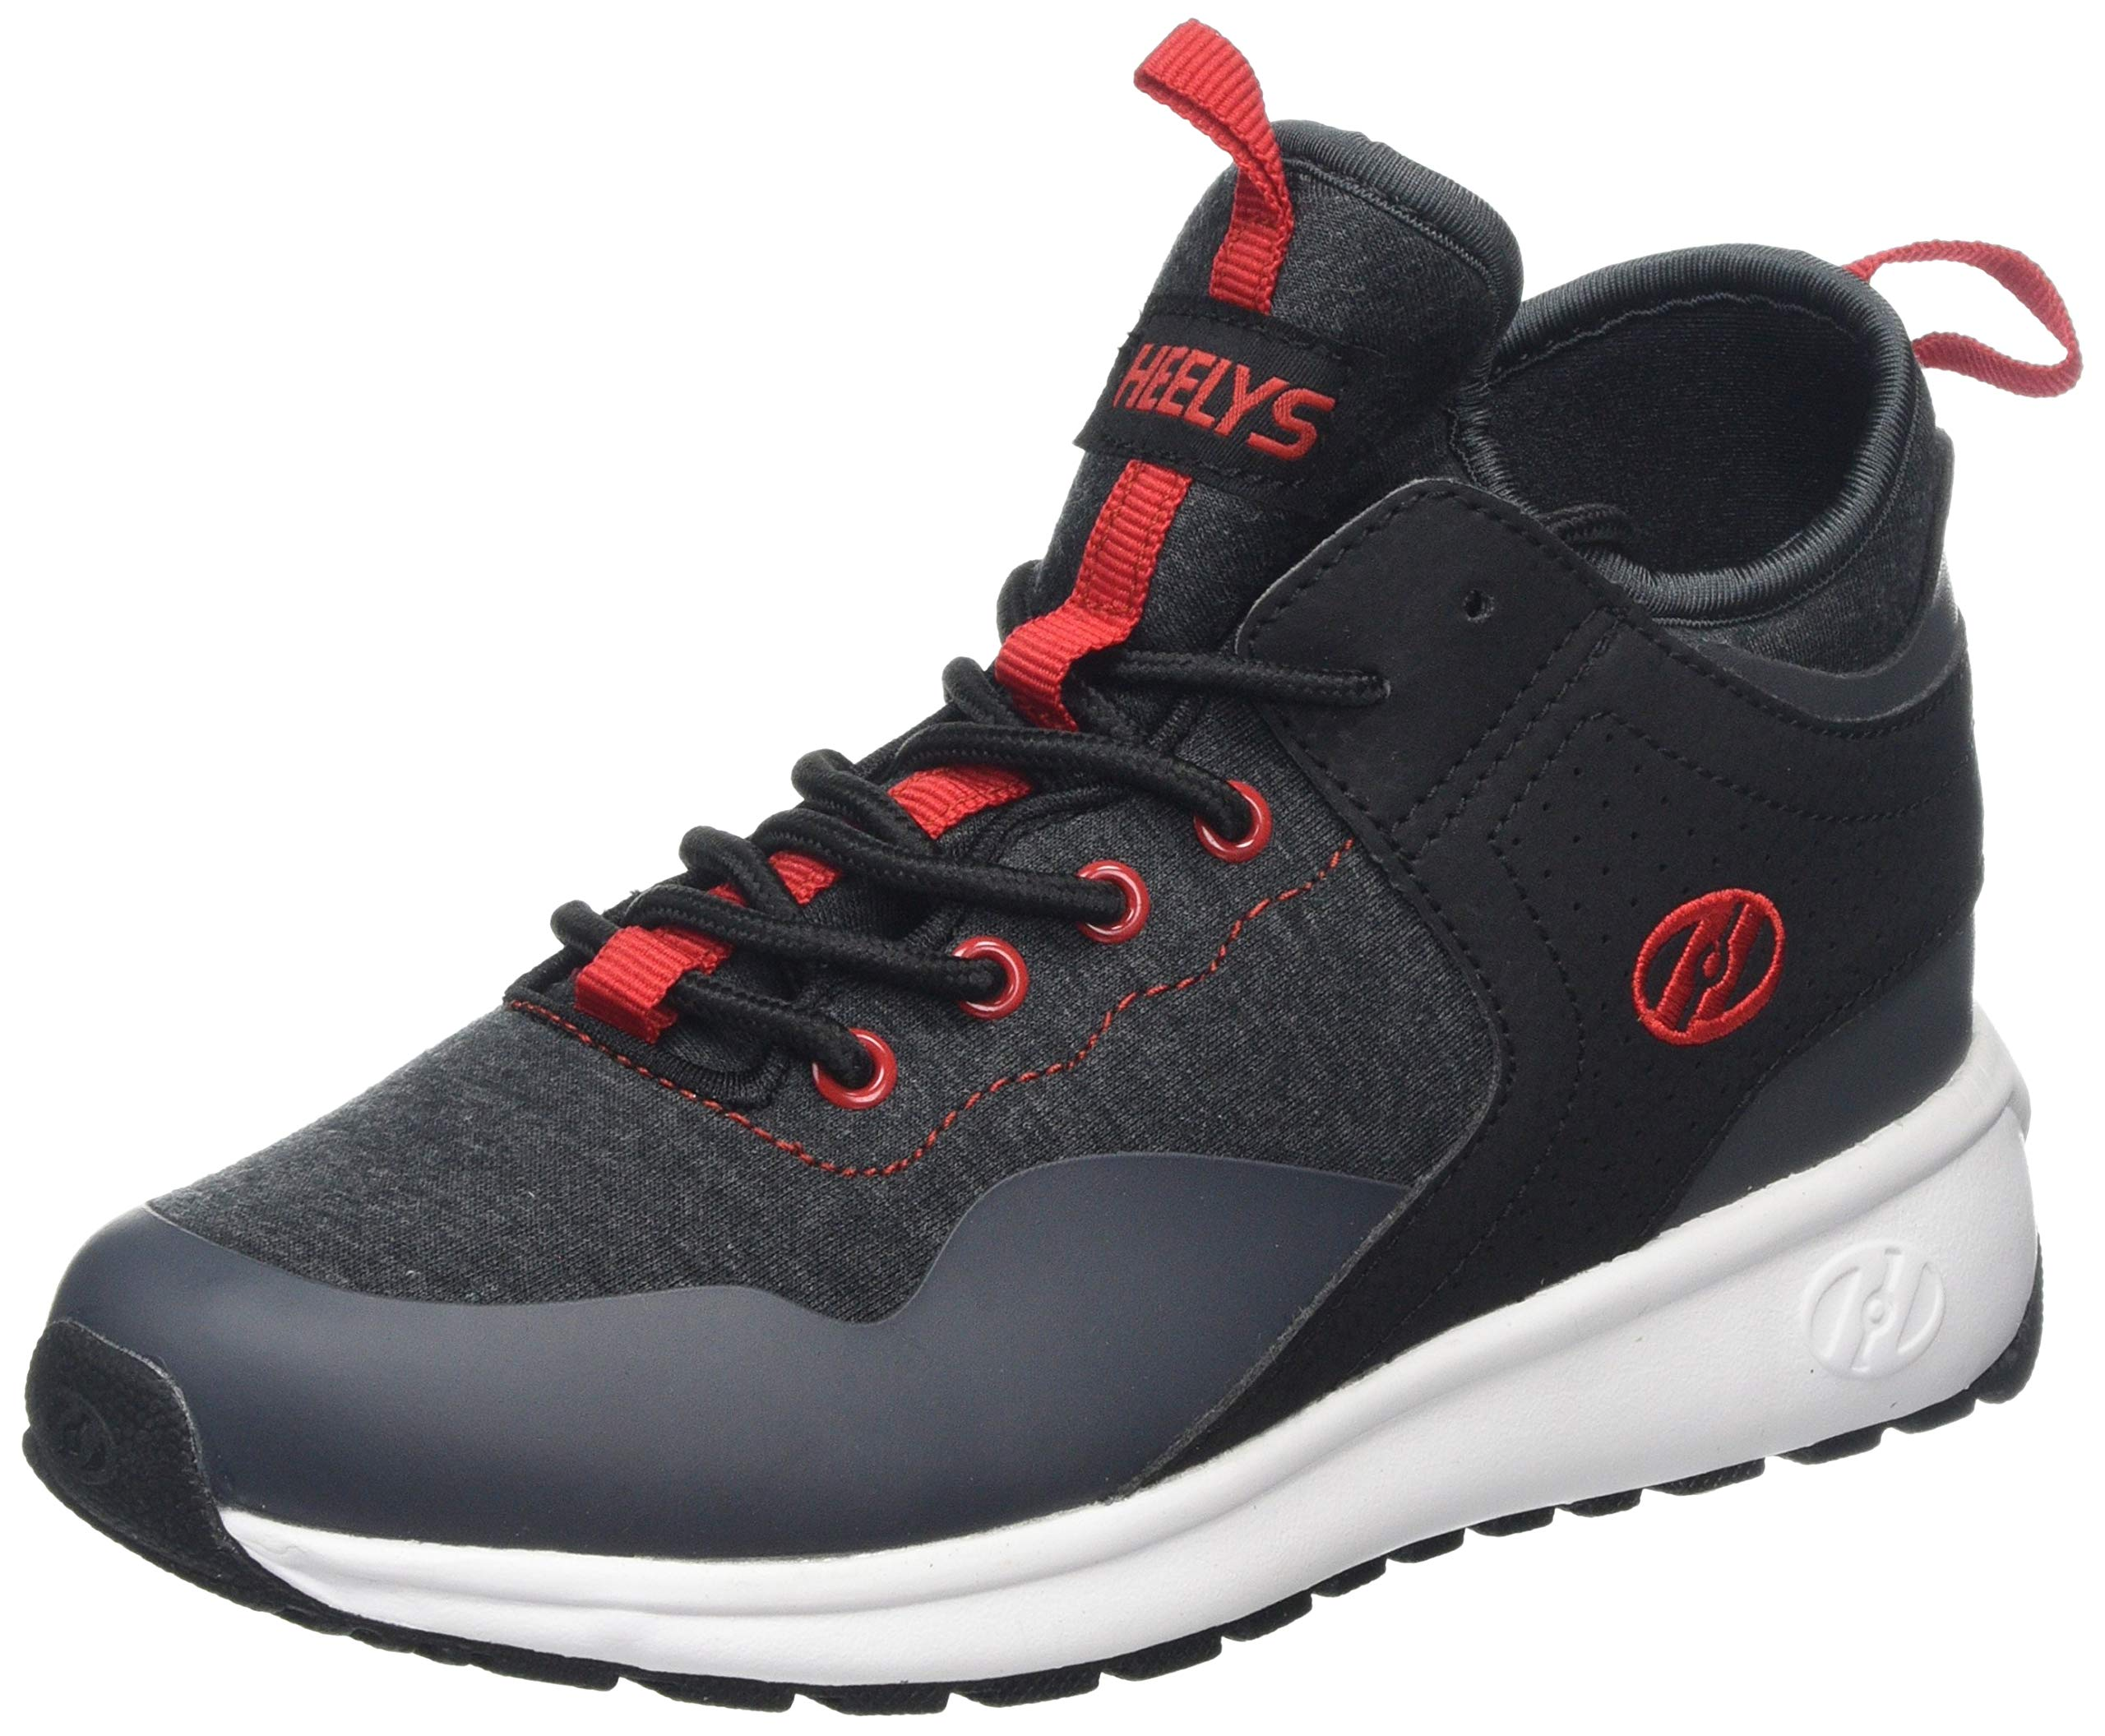 Heelys Boys' Piper Tennis Shoe Black Heathered/Red 7 M US Big Kid